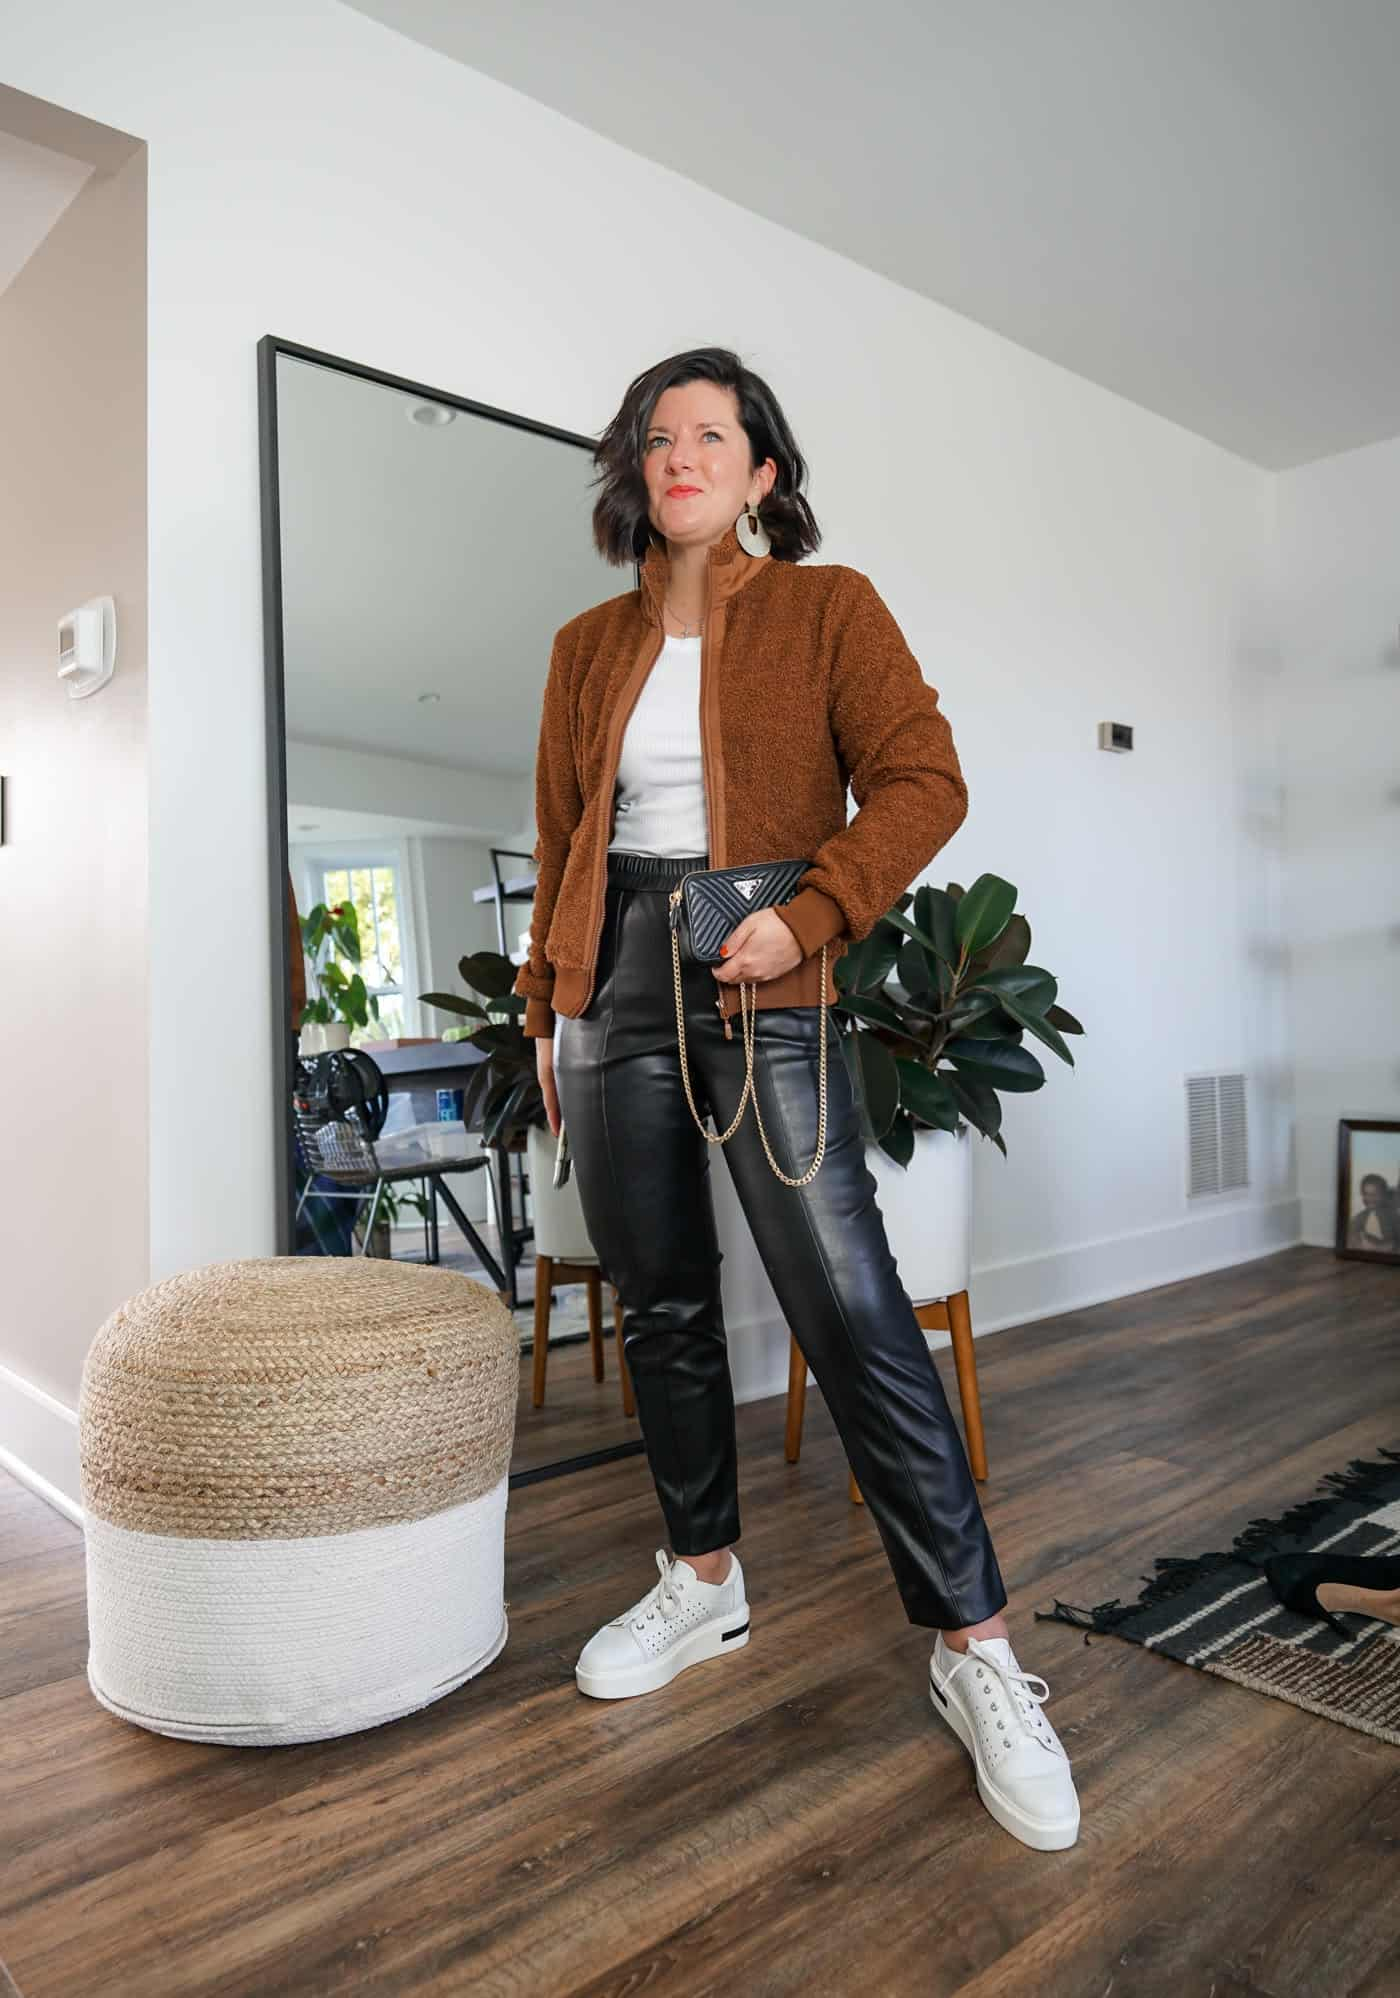 A Lily Love Affair wearing womes faux leather pants with a brown sherpa jacket and white sneakers